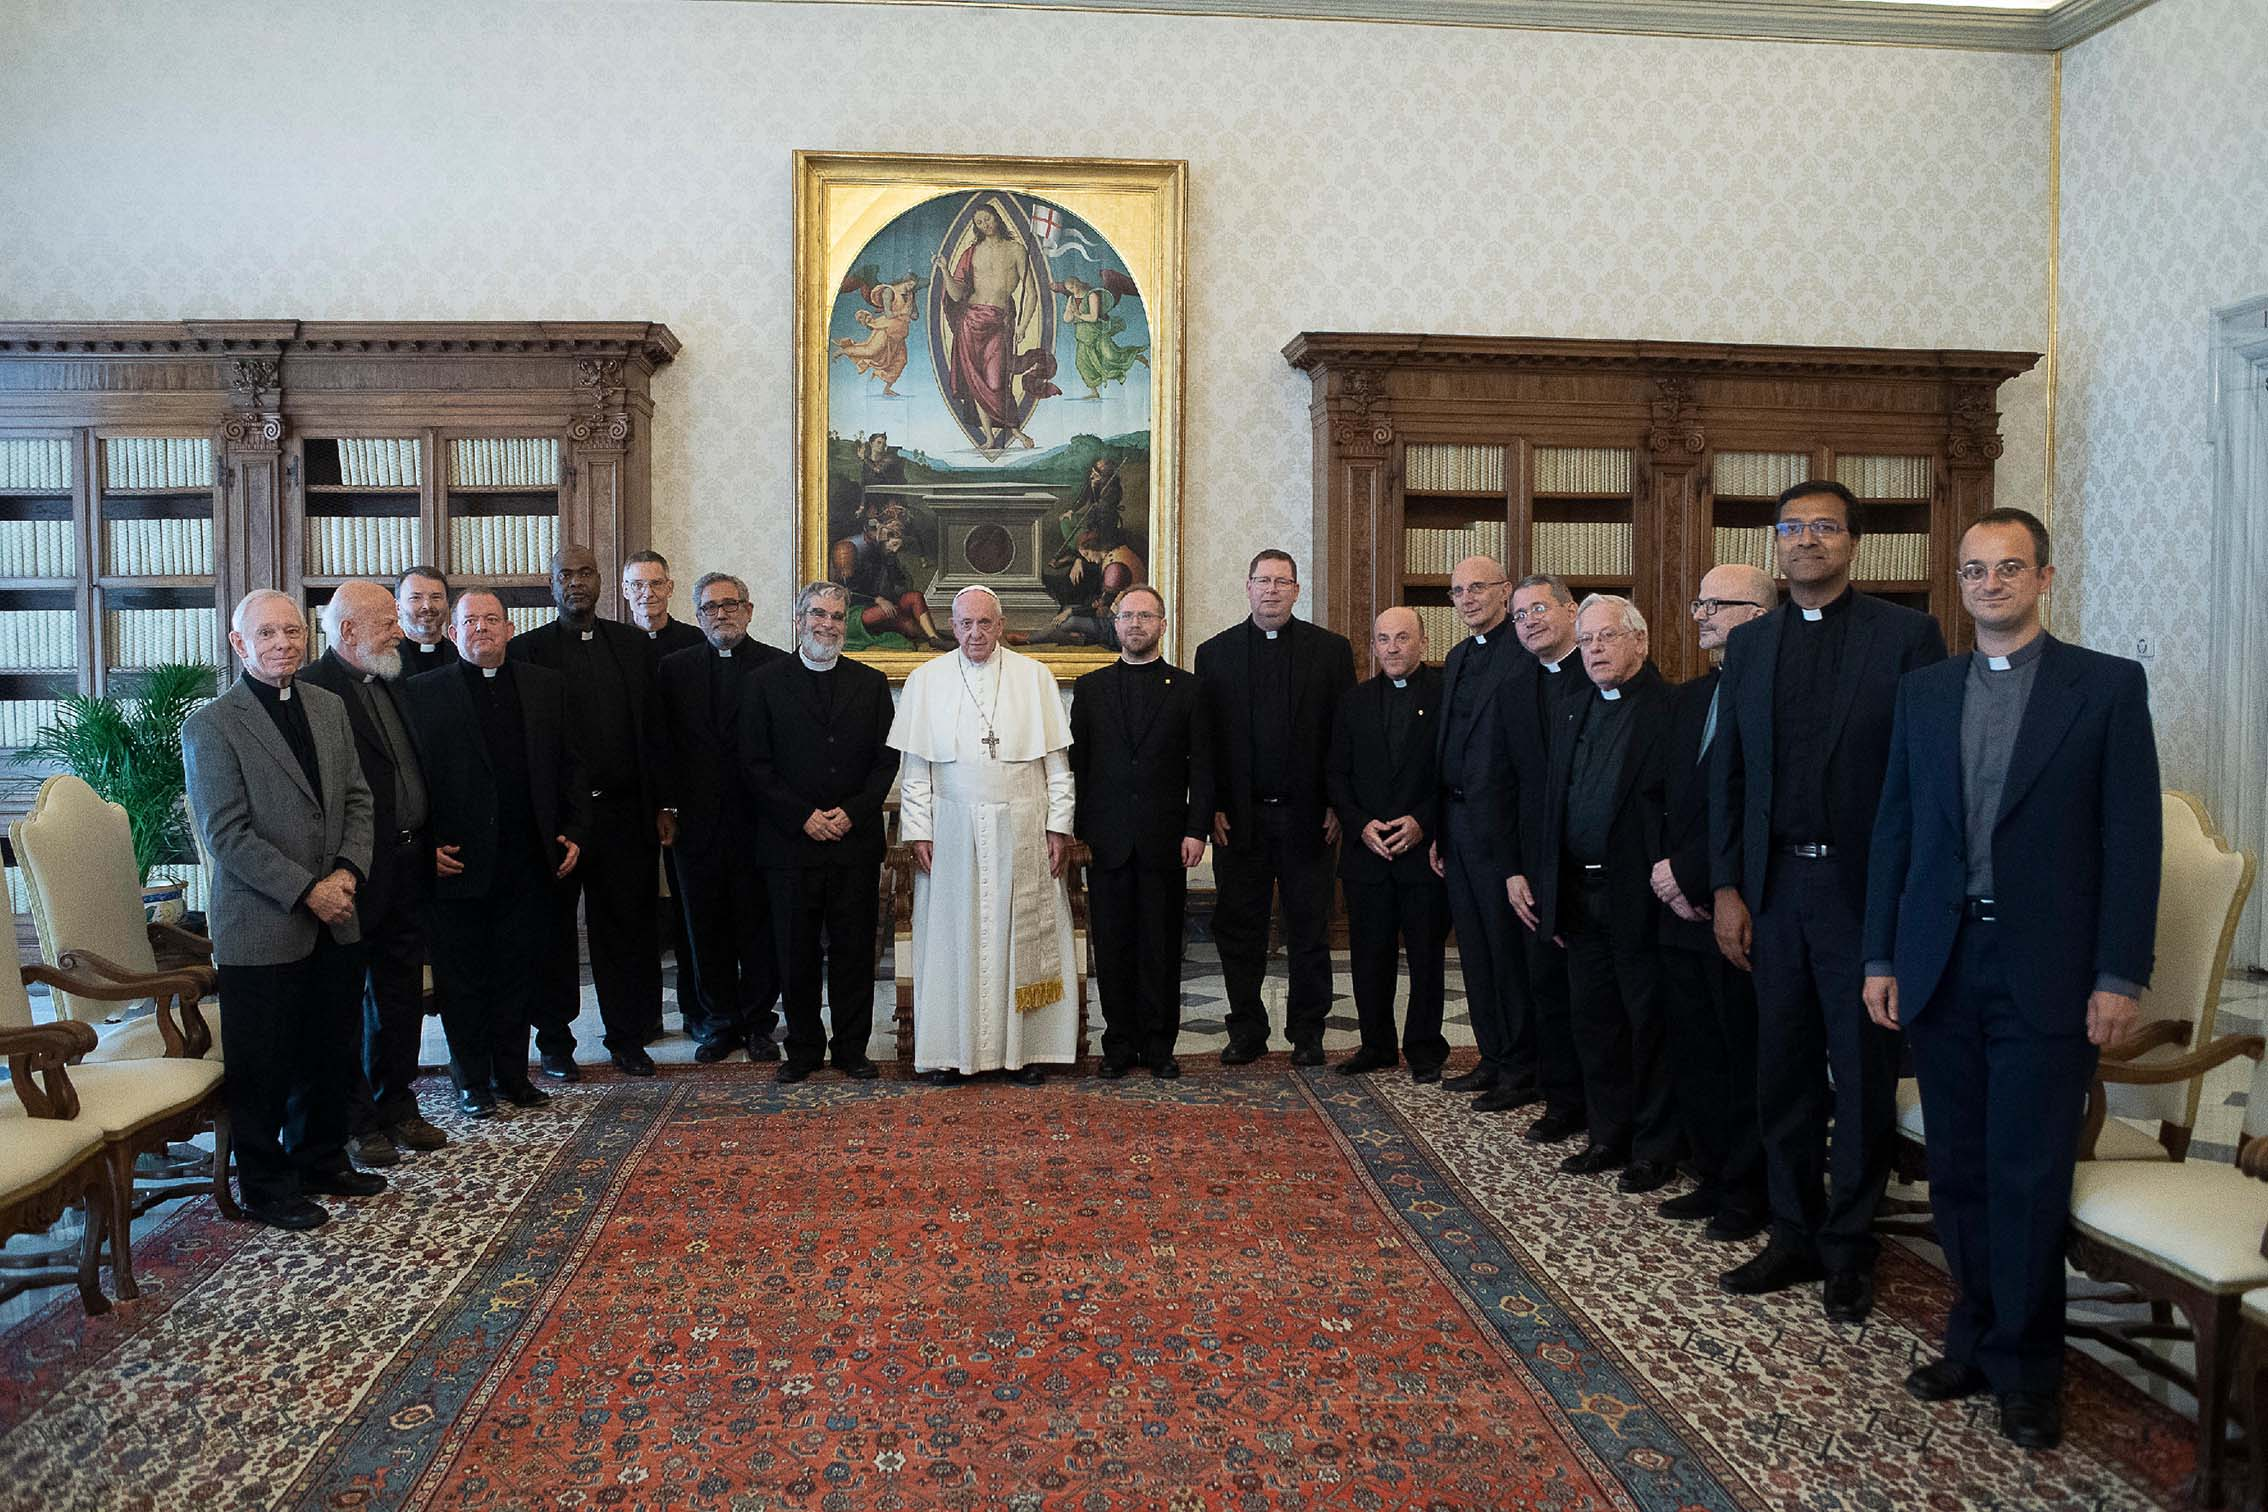 Group Shot of Pope Francis and the Vatican Observatory Team